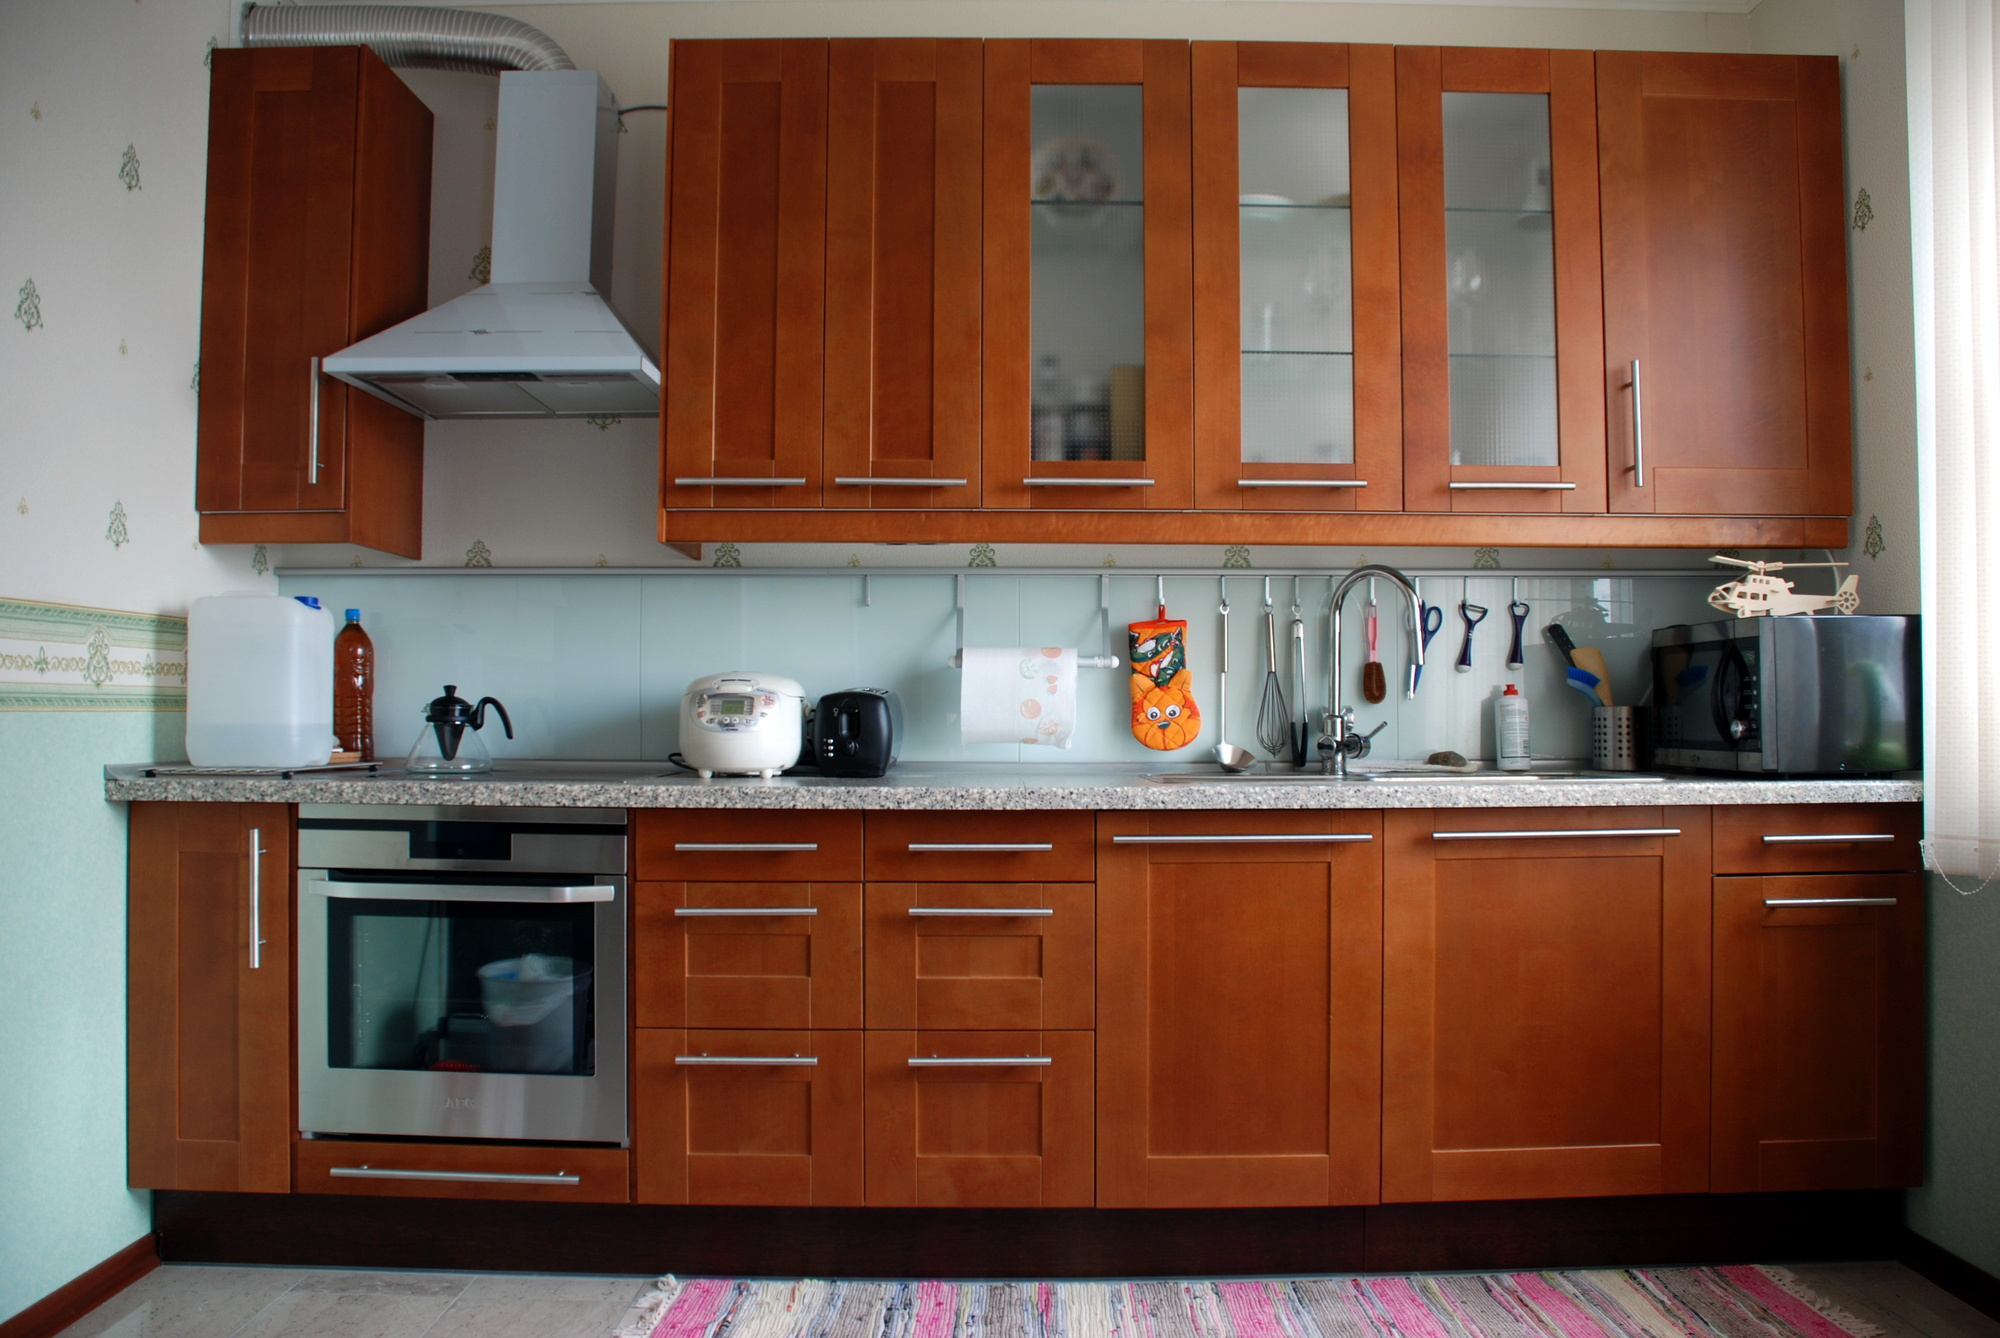 5 Easy Kitchen Updates to Improve Your Space